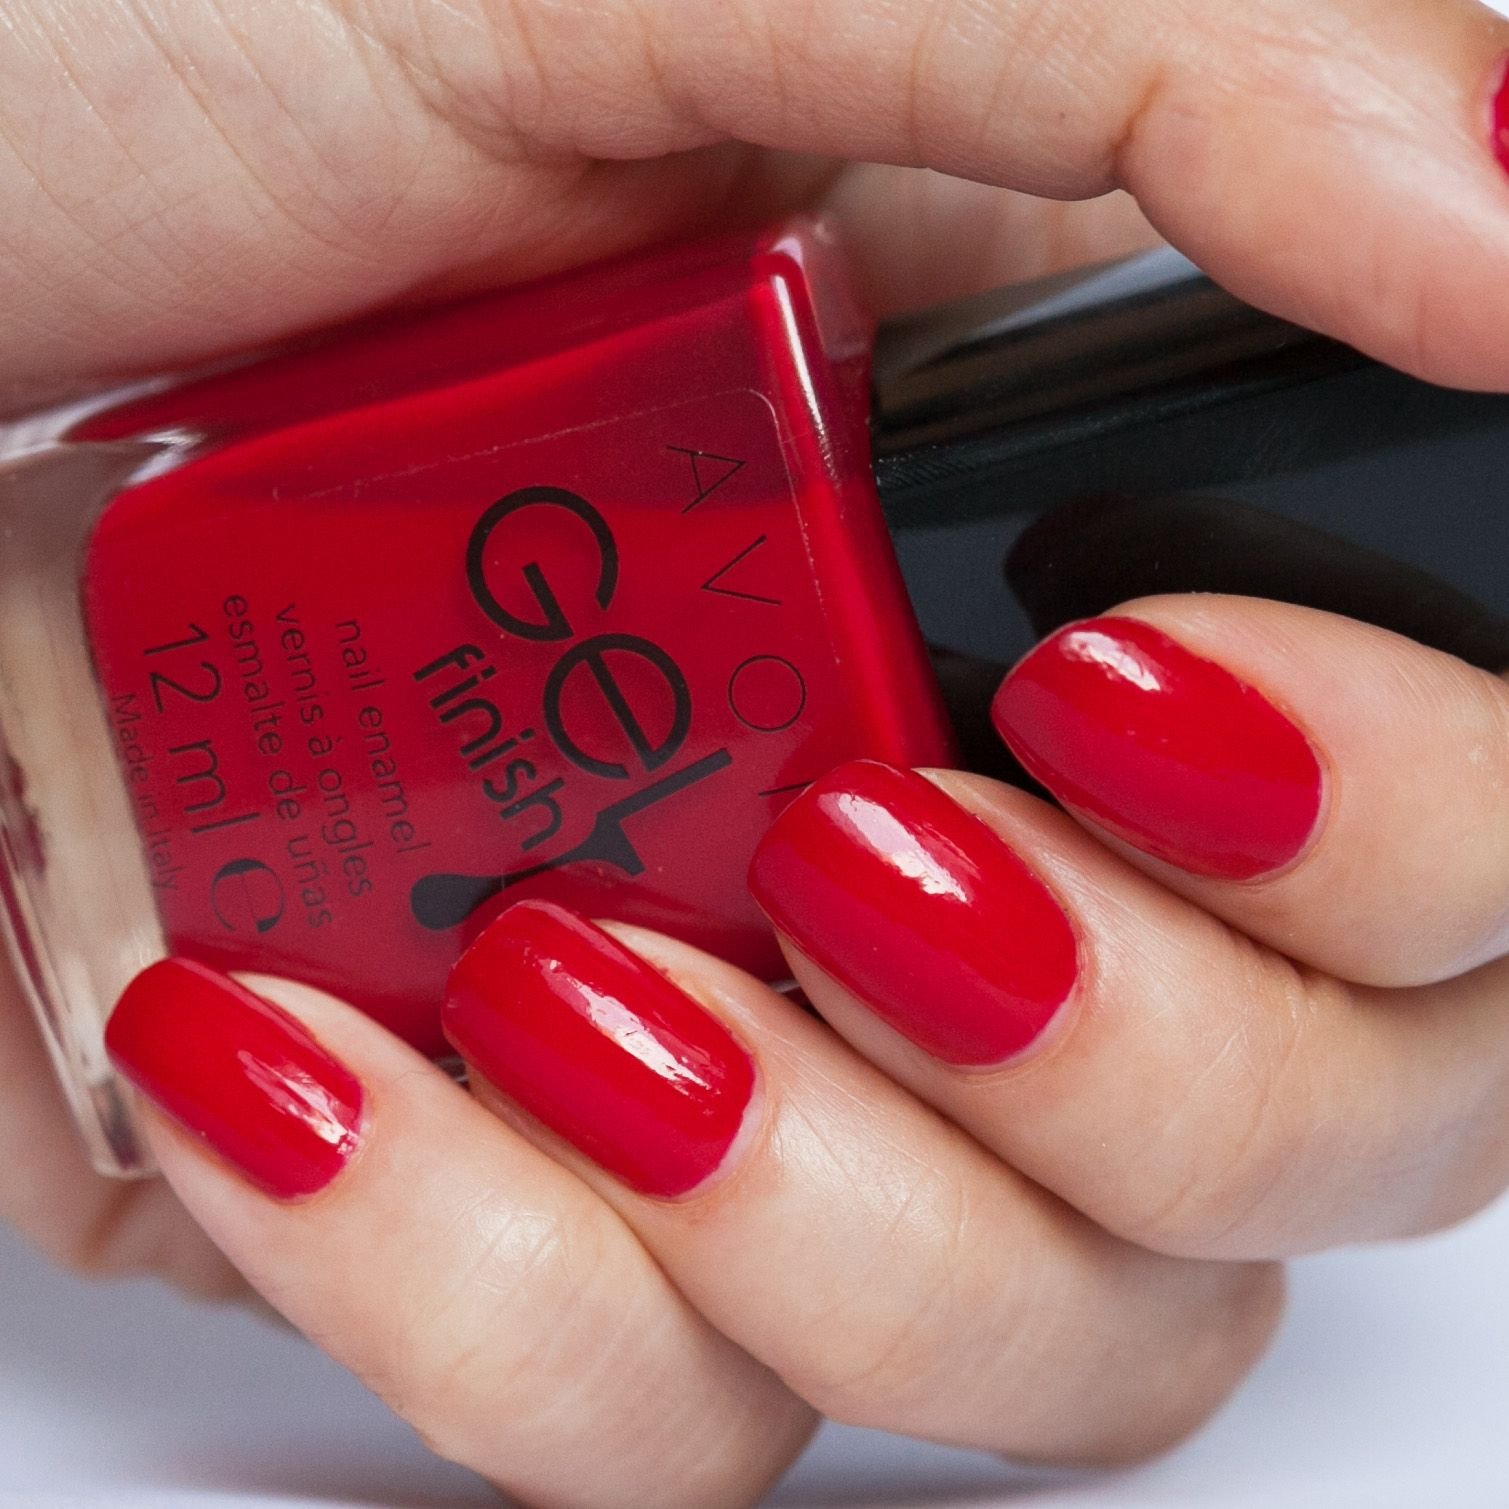 Avon Gel Finish Candy Apple Nails Pinterest Apple Ideas And Designs